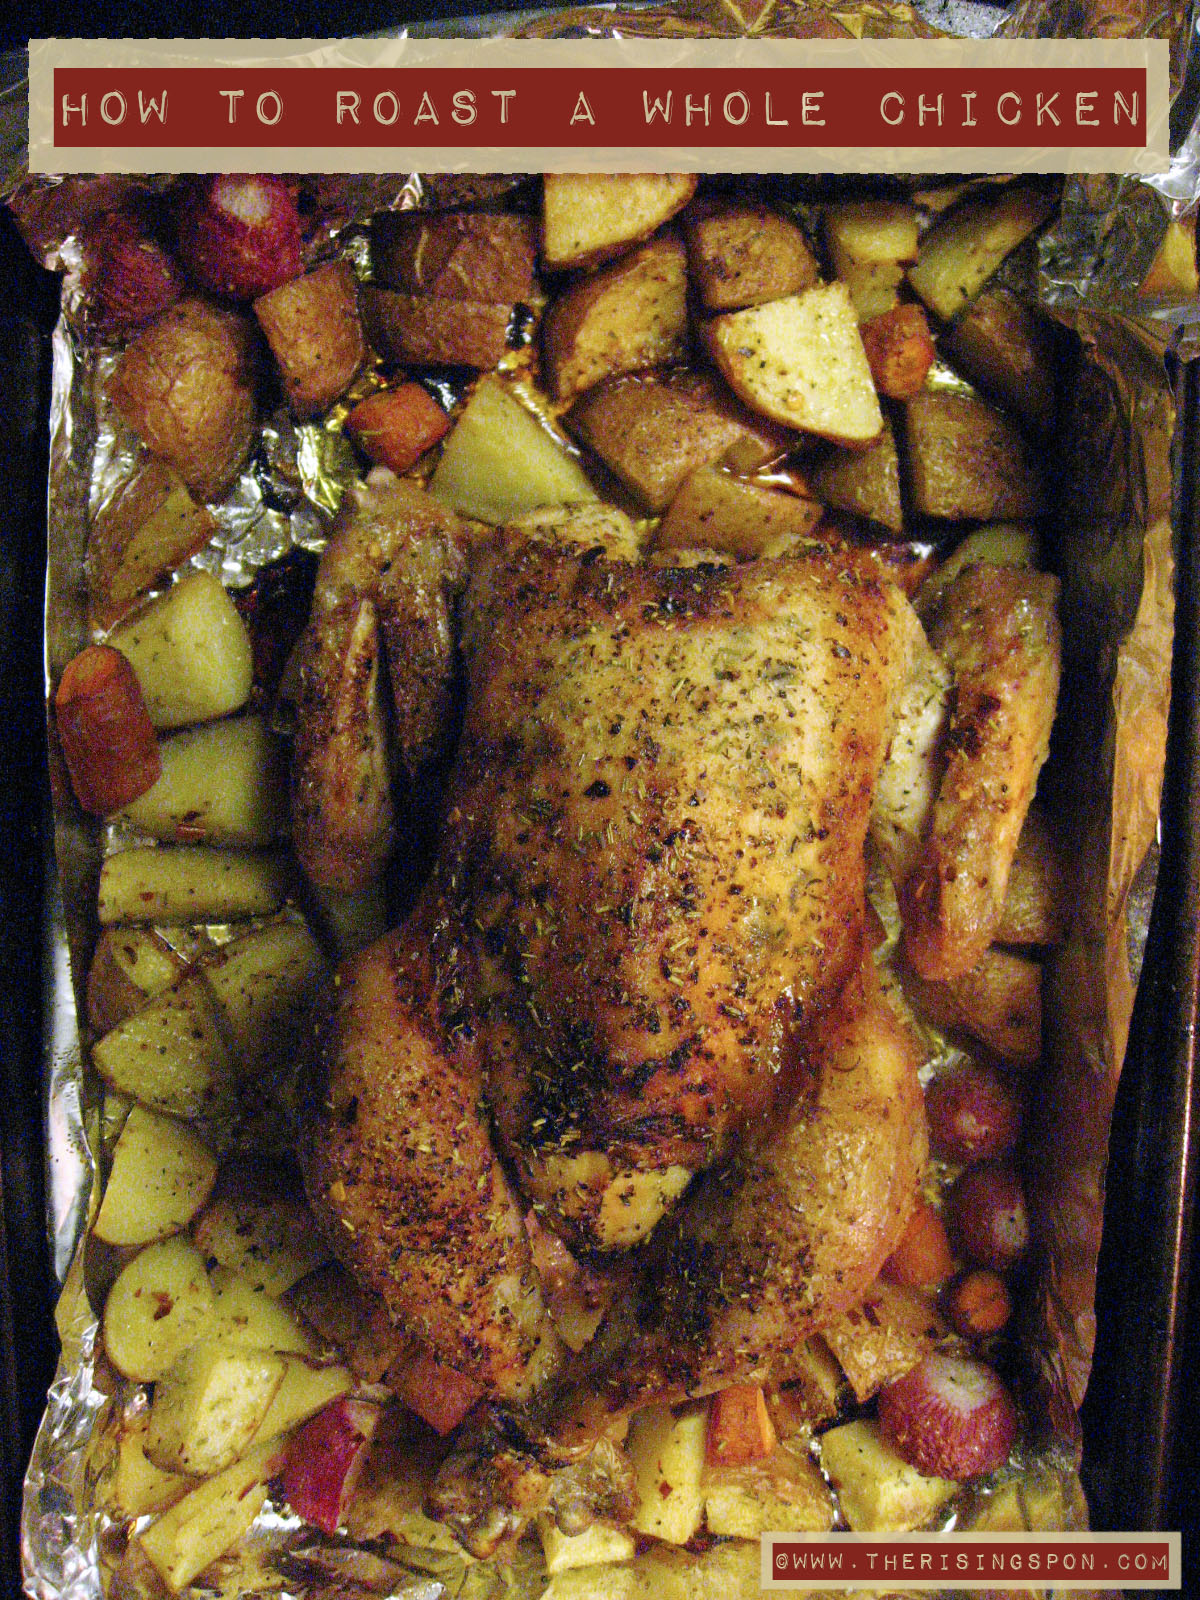 How to roast a whole pastured chicken a real food money saver how to roast a whole pastured chicken a real food money saver forumfinder Choice Image